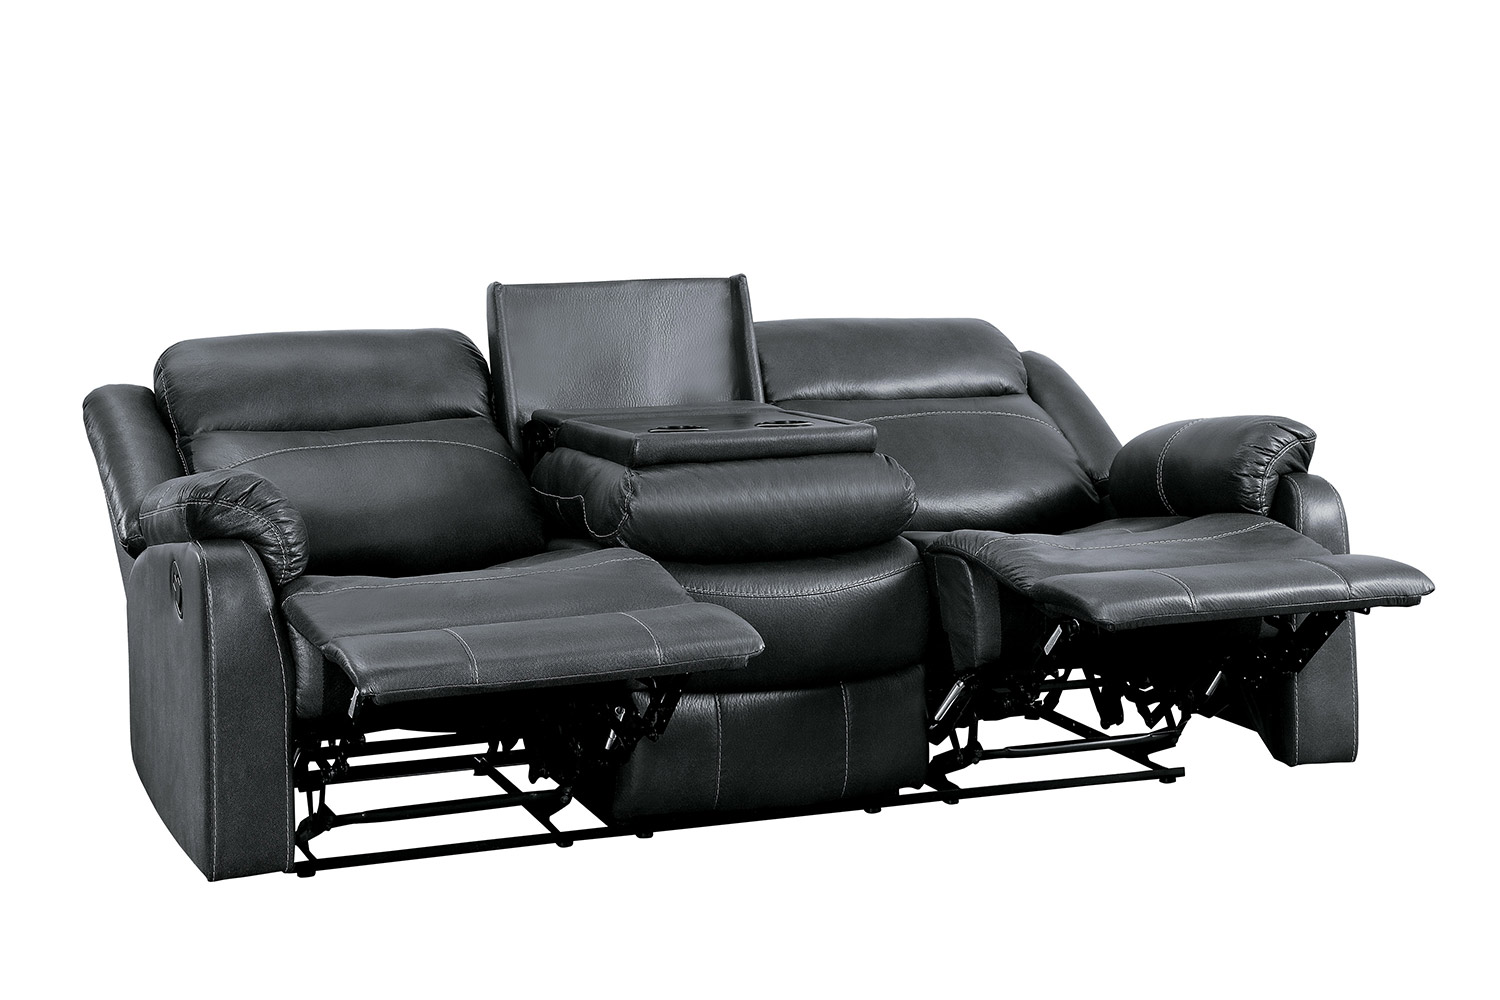 Homelegance Yerba Double Lay Flat Reclining Sofa With Center Drop-Down Cup Holders - Dark Gray